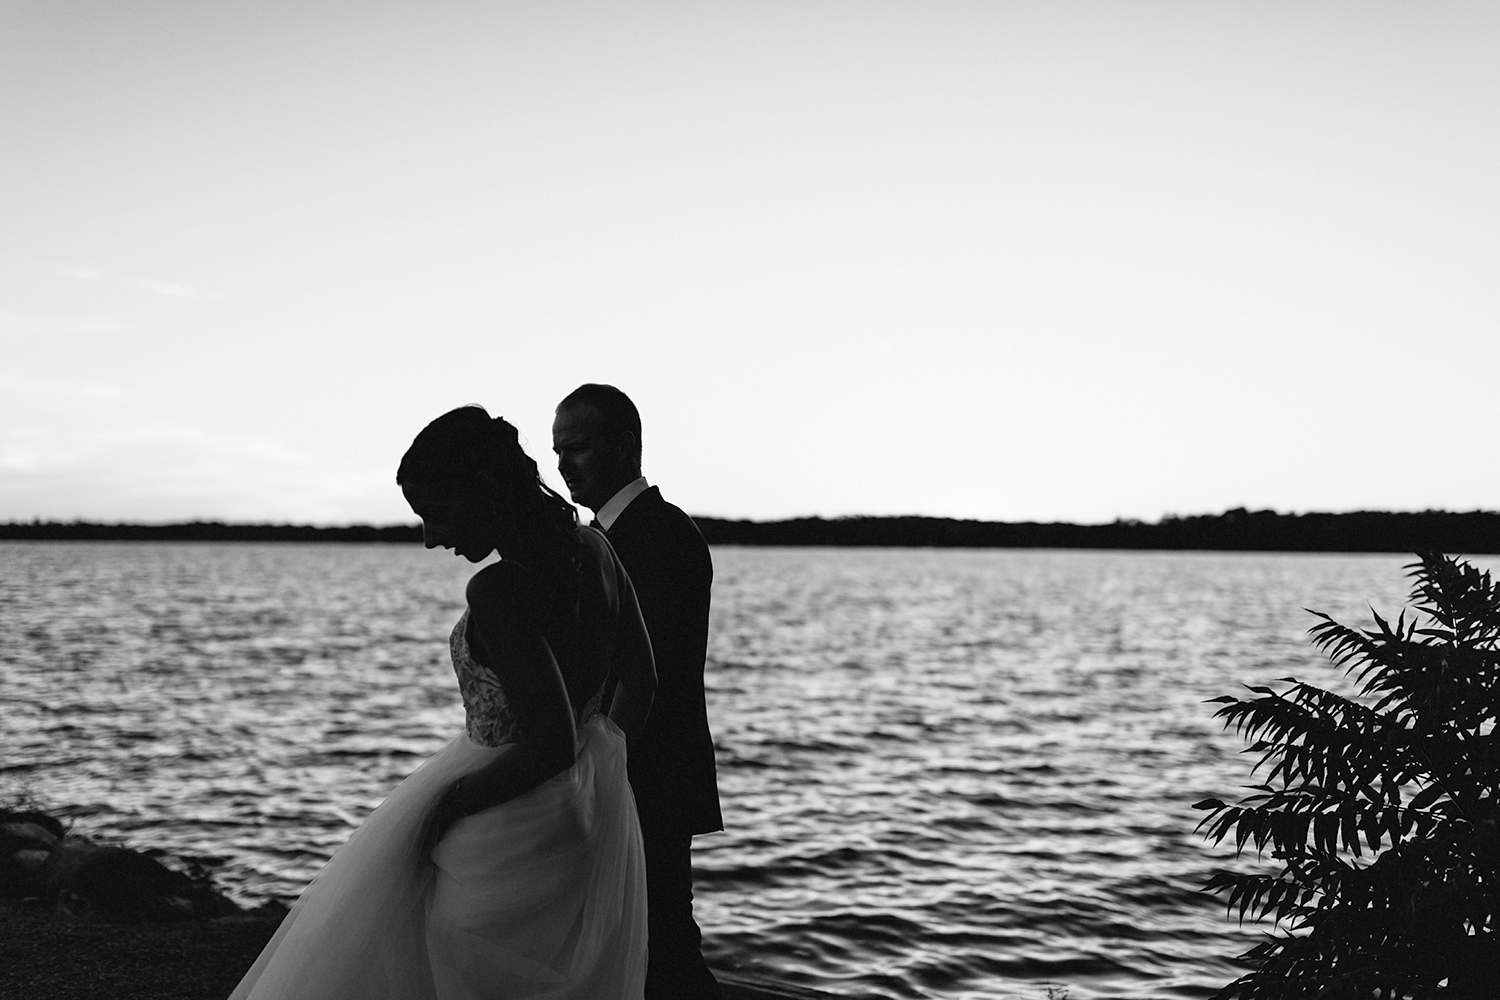 sunset-golden-hour-couples-portraits-candid-moment-walking-At-Eganridge-Resort-Venue-Muskoka-Ontario-Wedding-Photography-by-Ryanne-Hollies-Photography-Toronto-Documentary-Wedding-Photographer.jpg